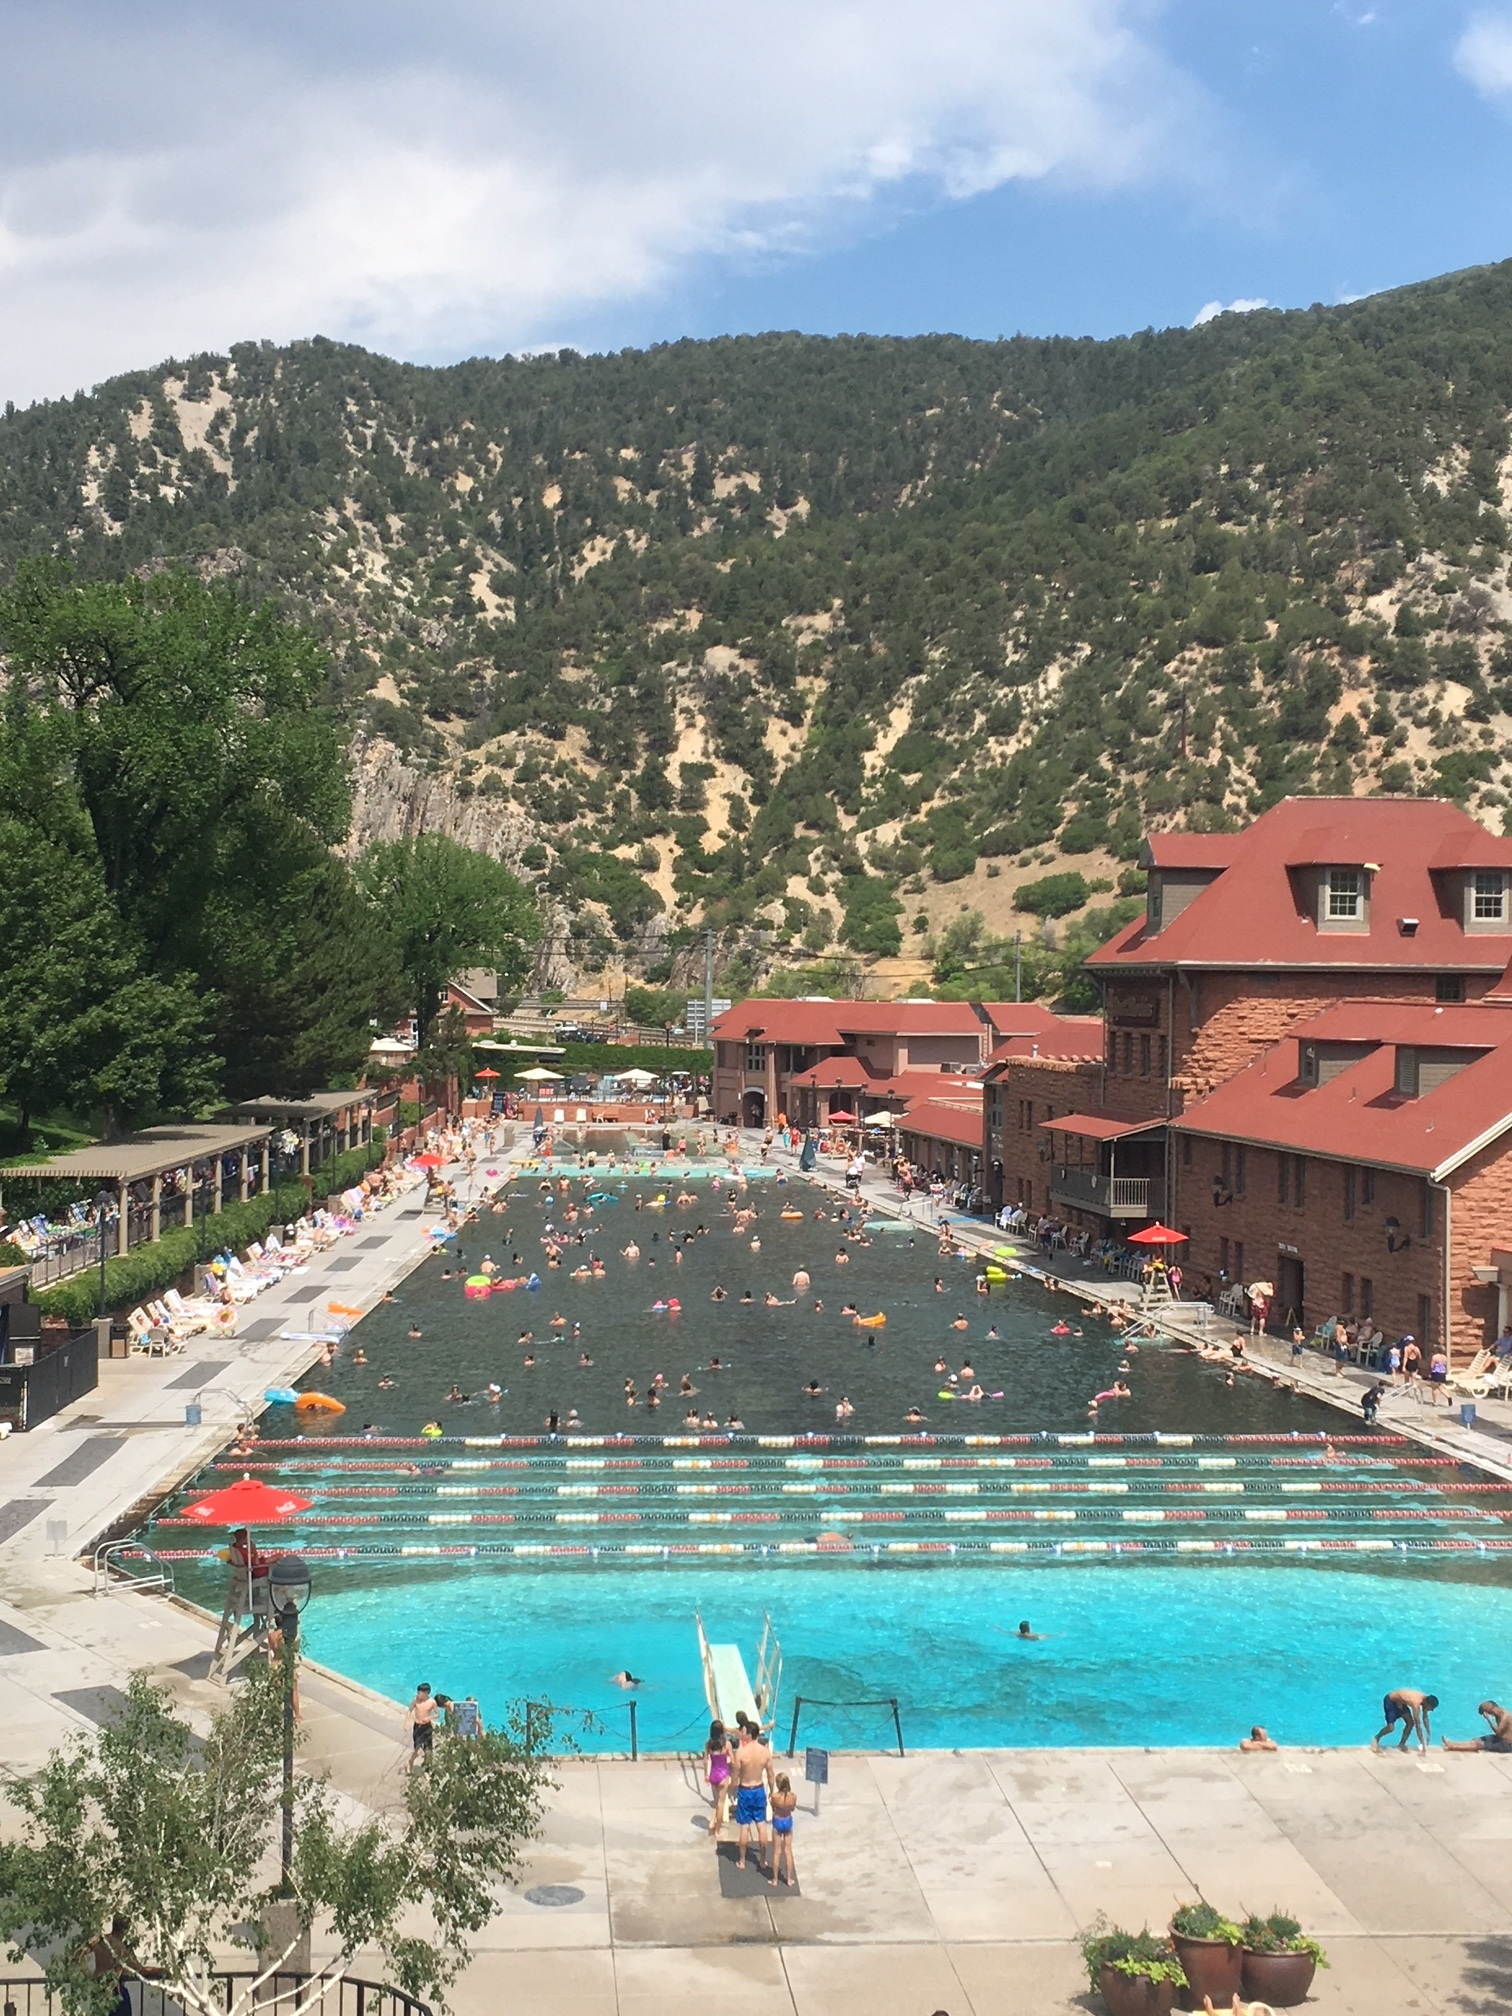 Hot Springs Pool - slightly different vibe than what Doc and the Mayos were seeking.